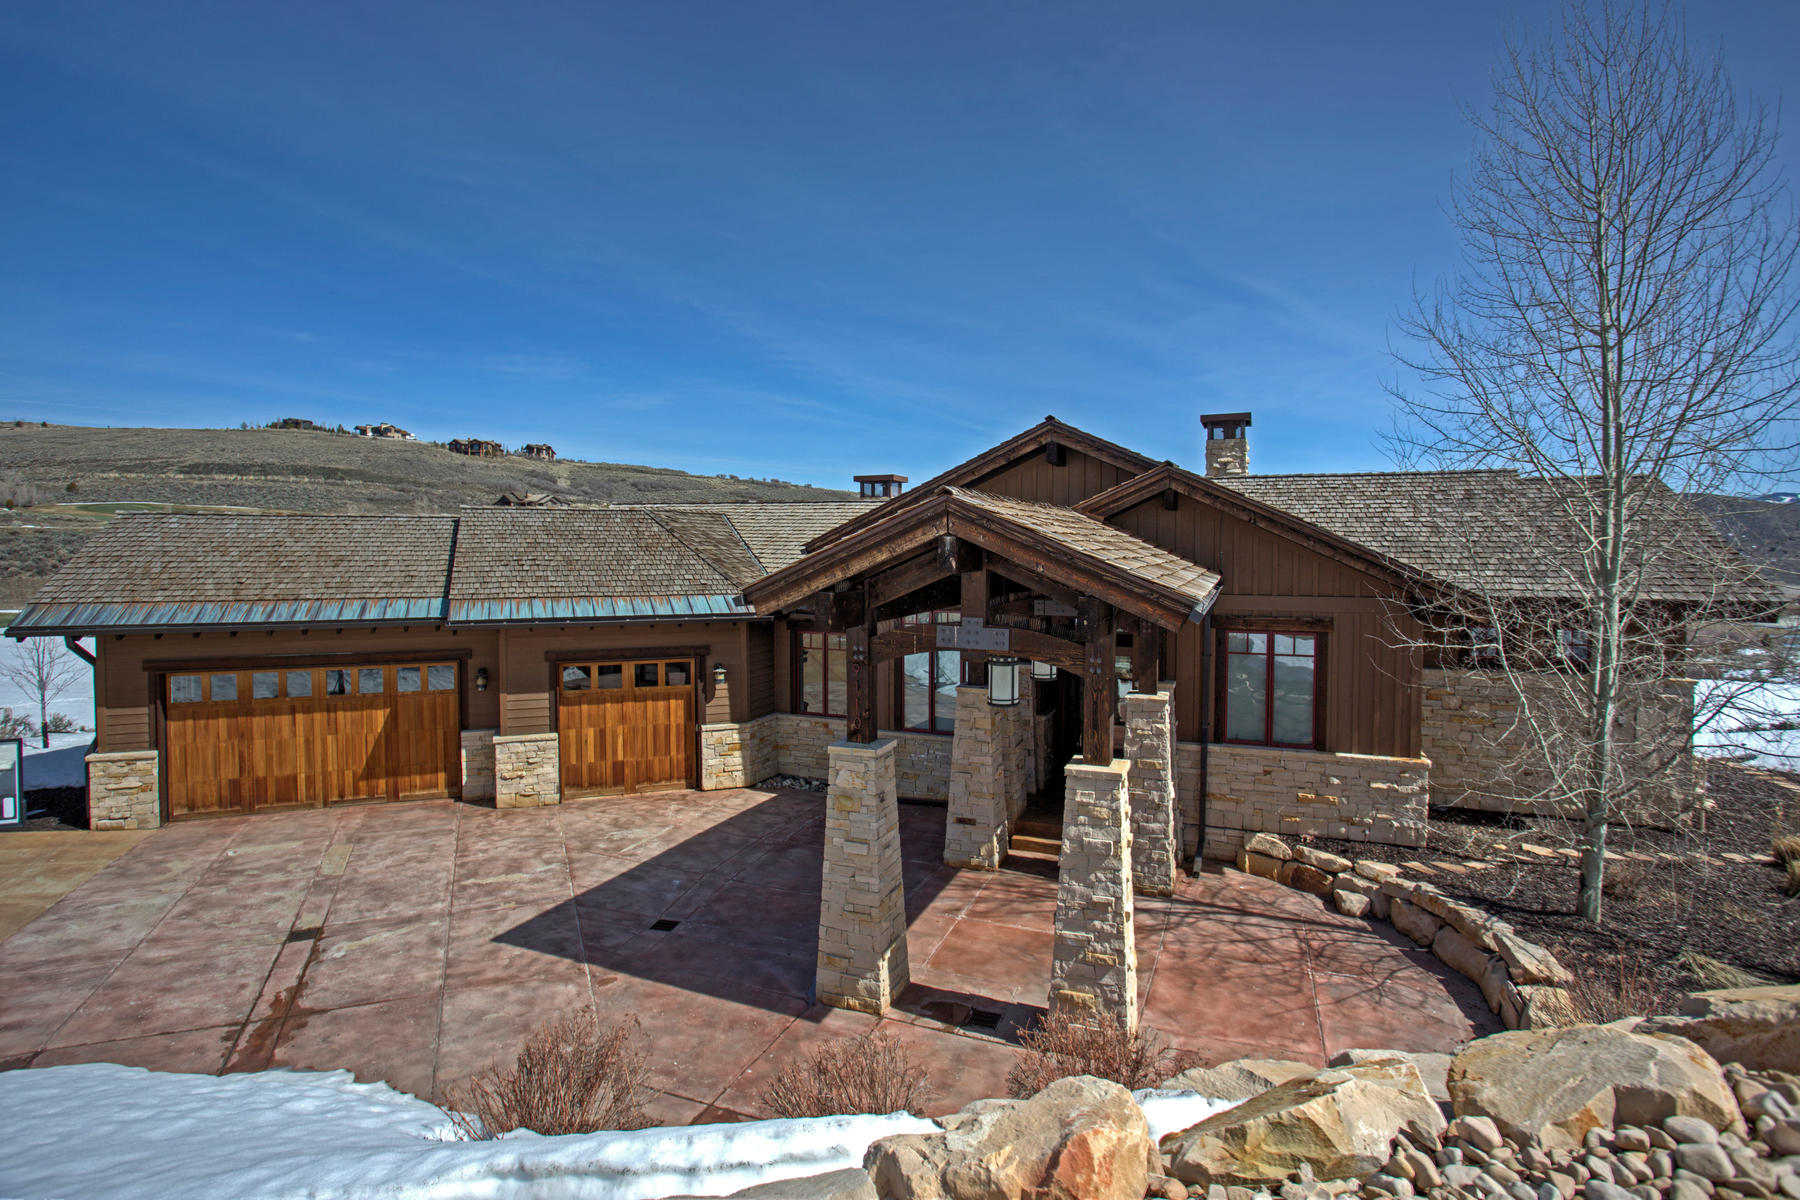 Single Family Home for Sale at Entertainer's Dream Home with Membership Included 9110 N Uinta Dr Heber City, Utah 84032 United States